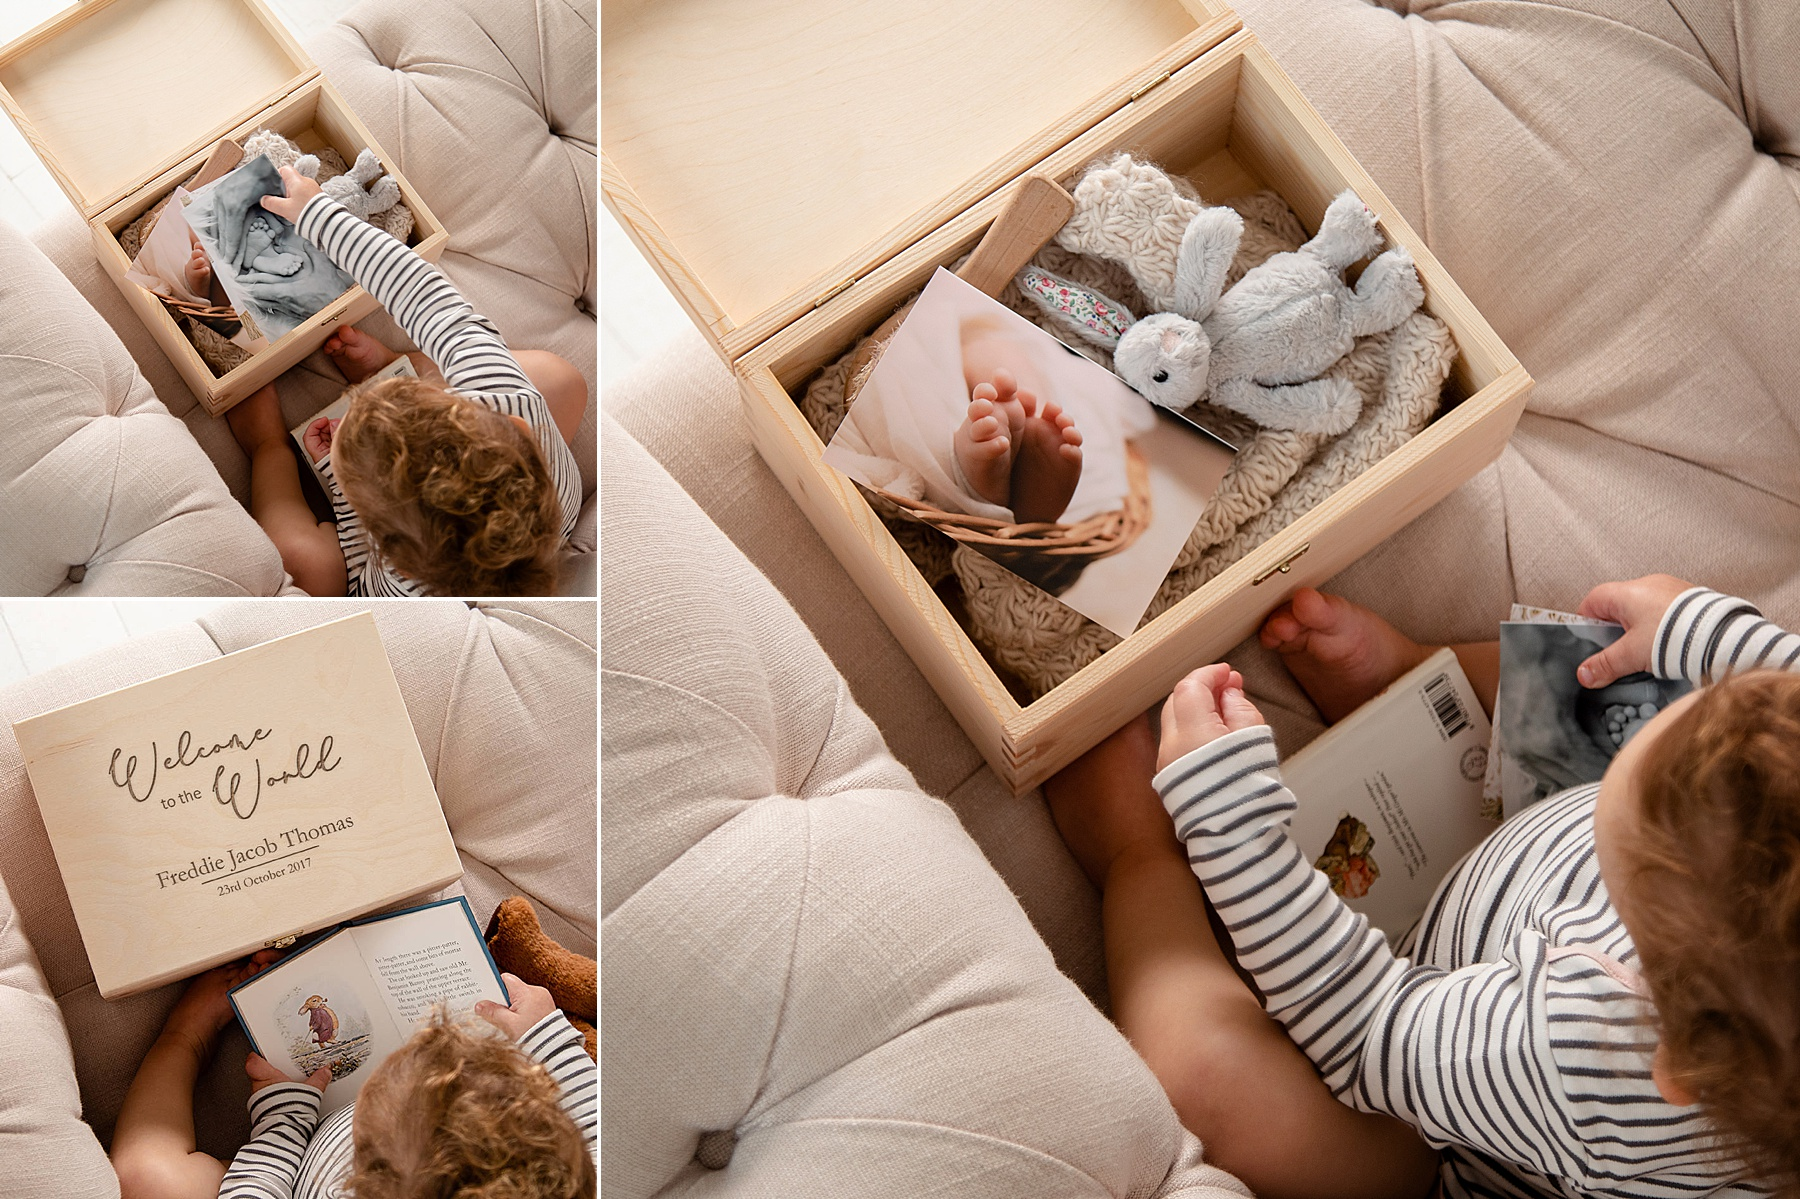 5 creative ways to capture your baby's first year